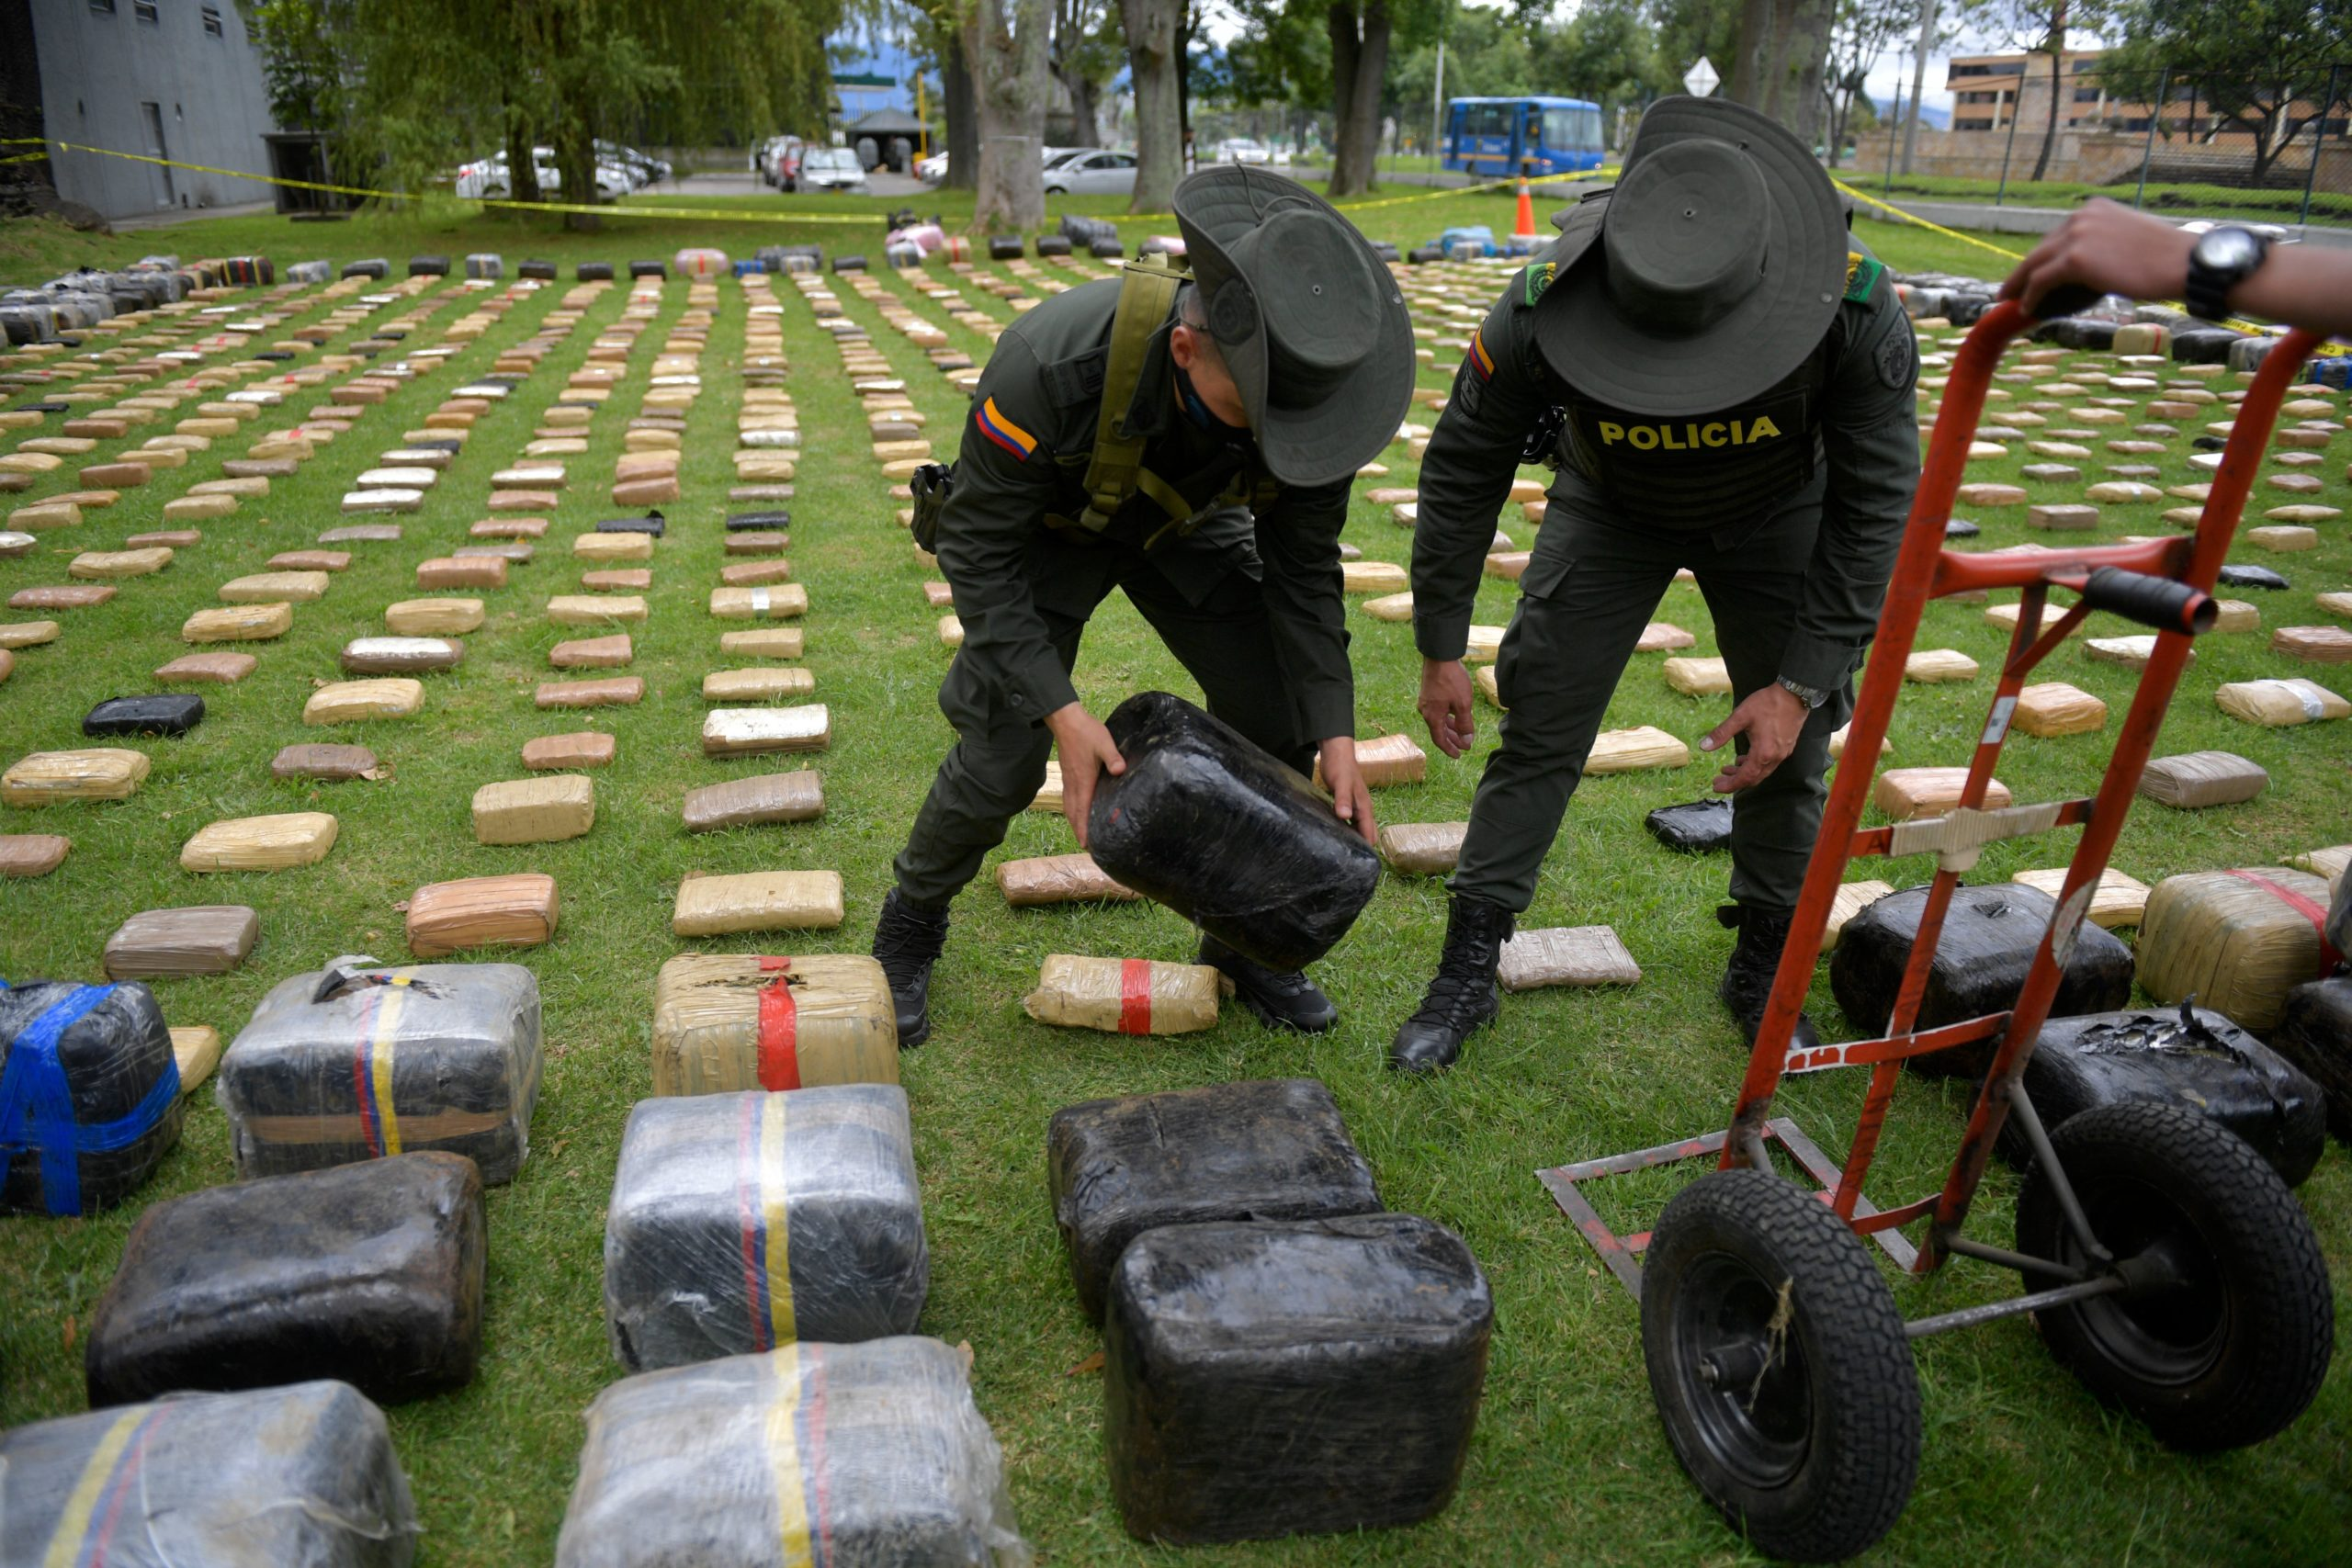 Colombian police officers organize packages of seized marijuana in Bogota on August 13, 2020. (Raul Arboleda/AFP via Getty Images)